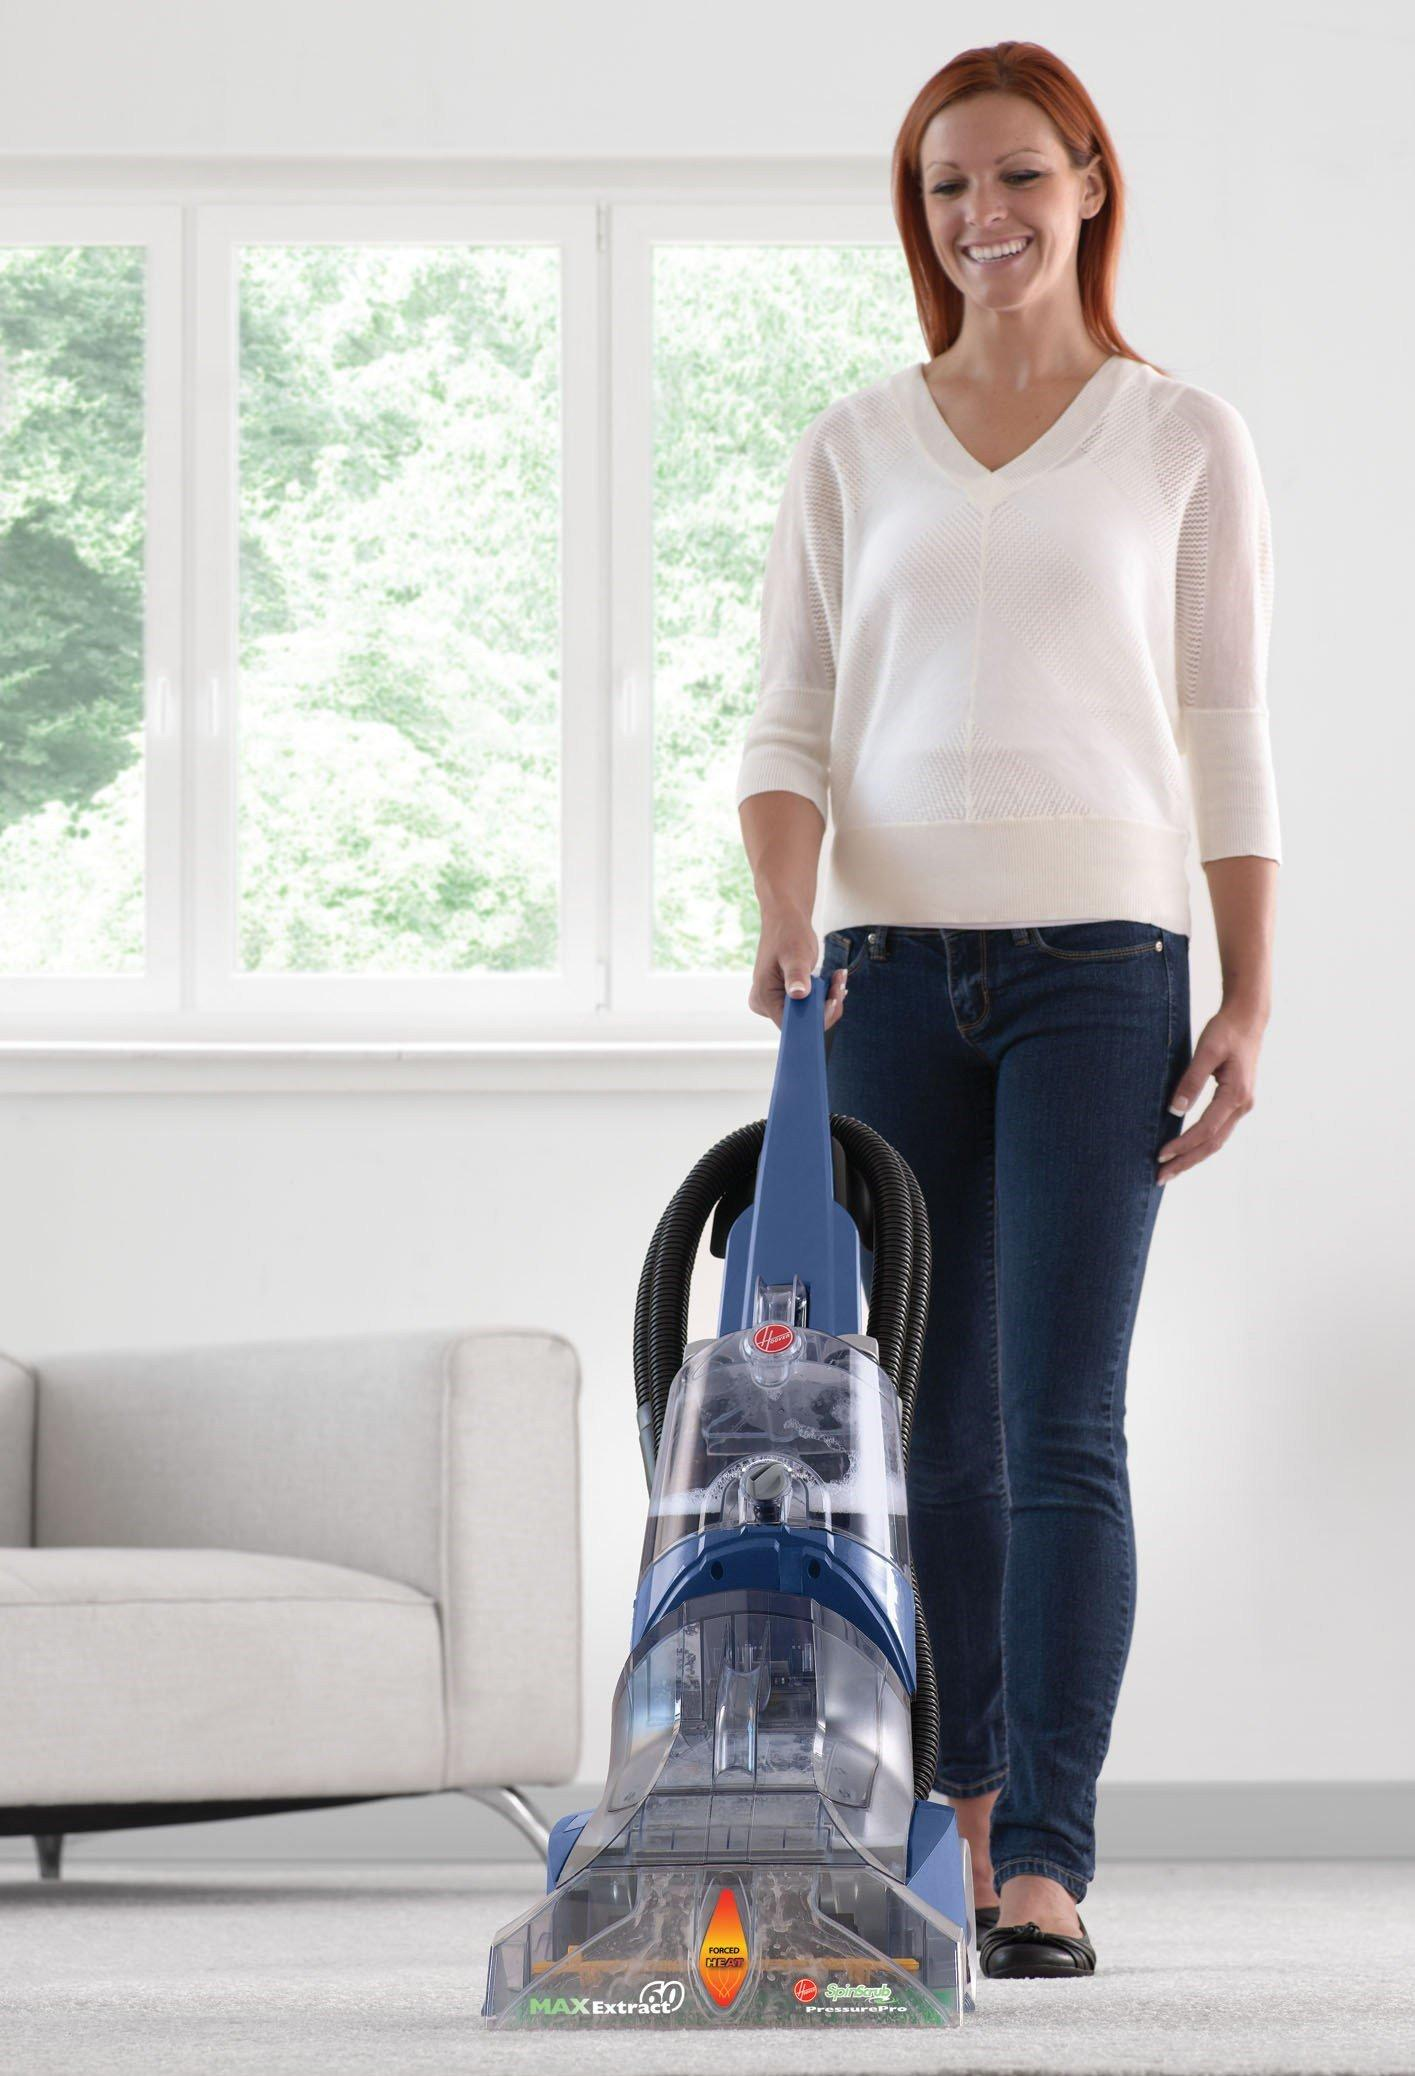 Reconditioned Max Extract 60 Pressure Pro Deep Carpet Cleaner3